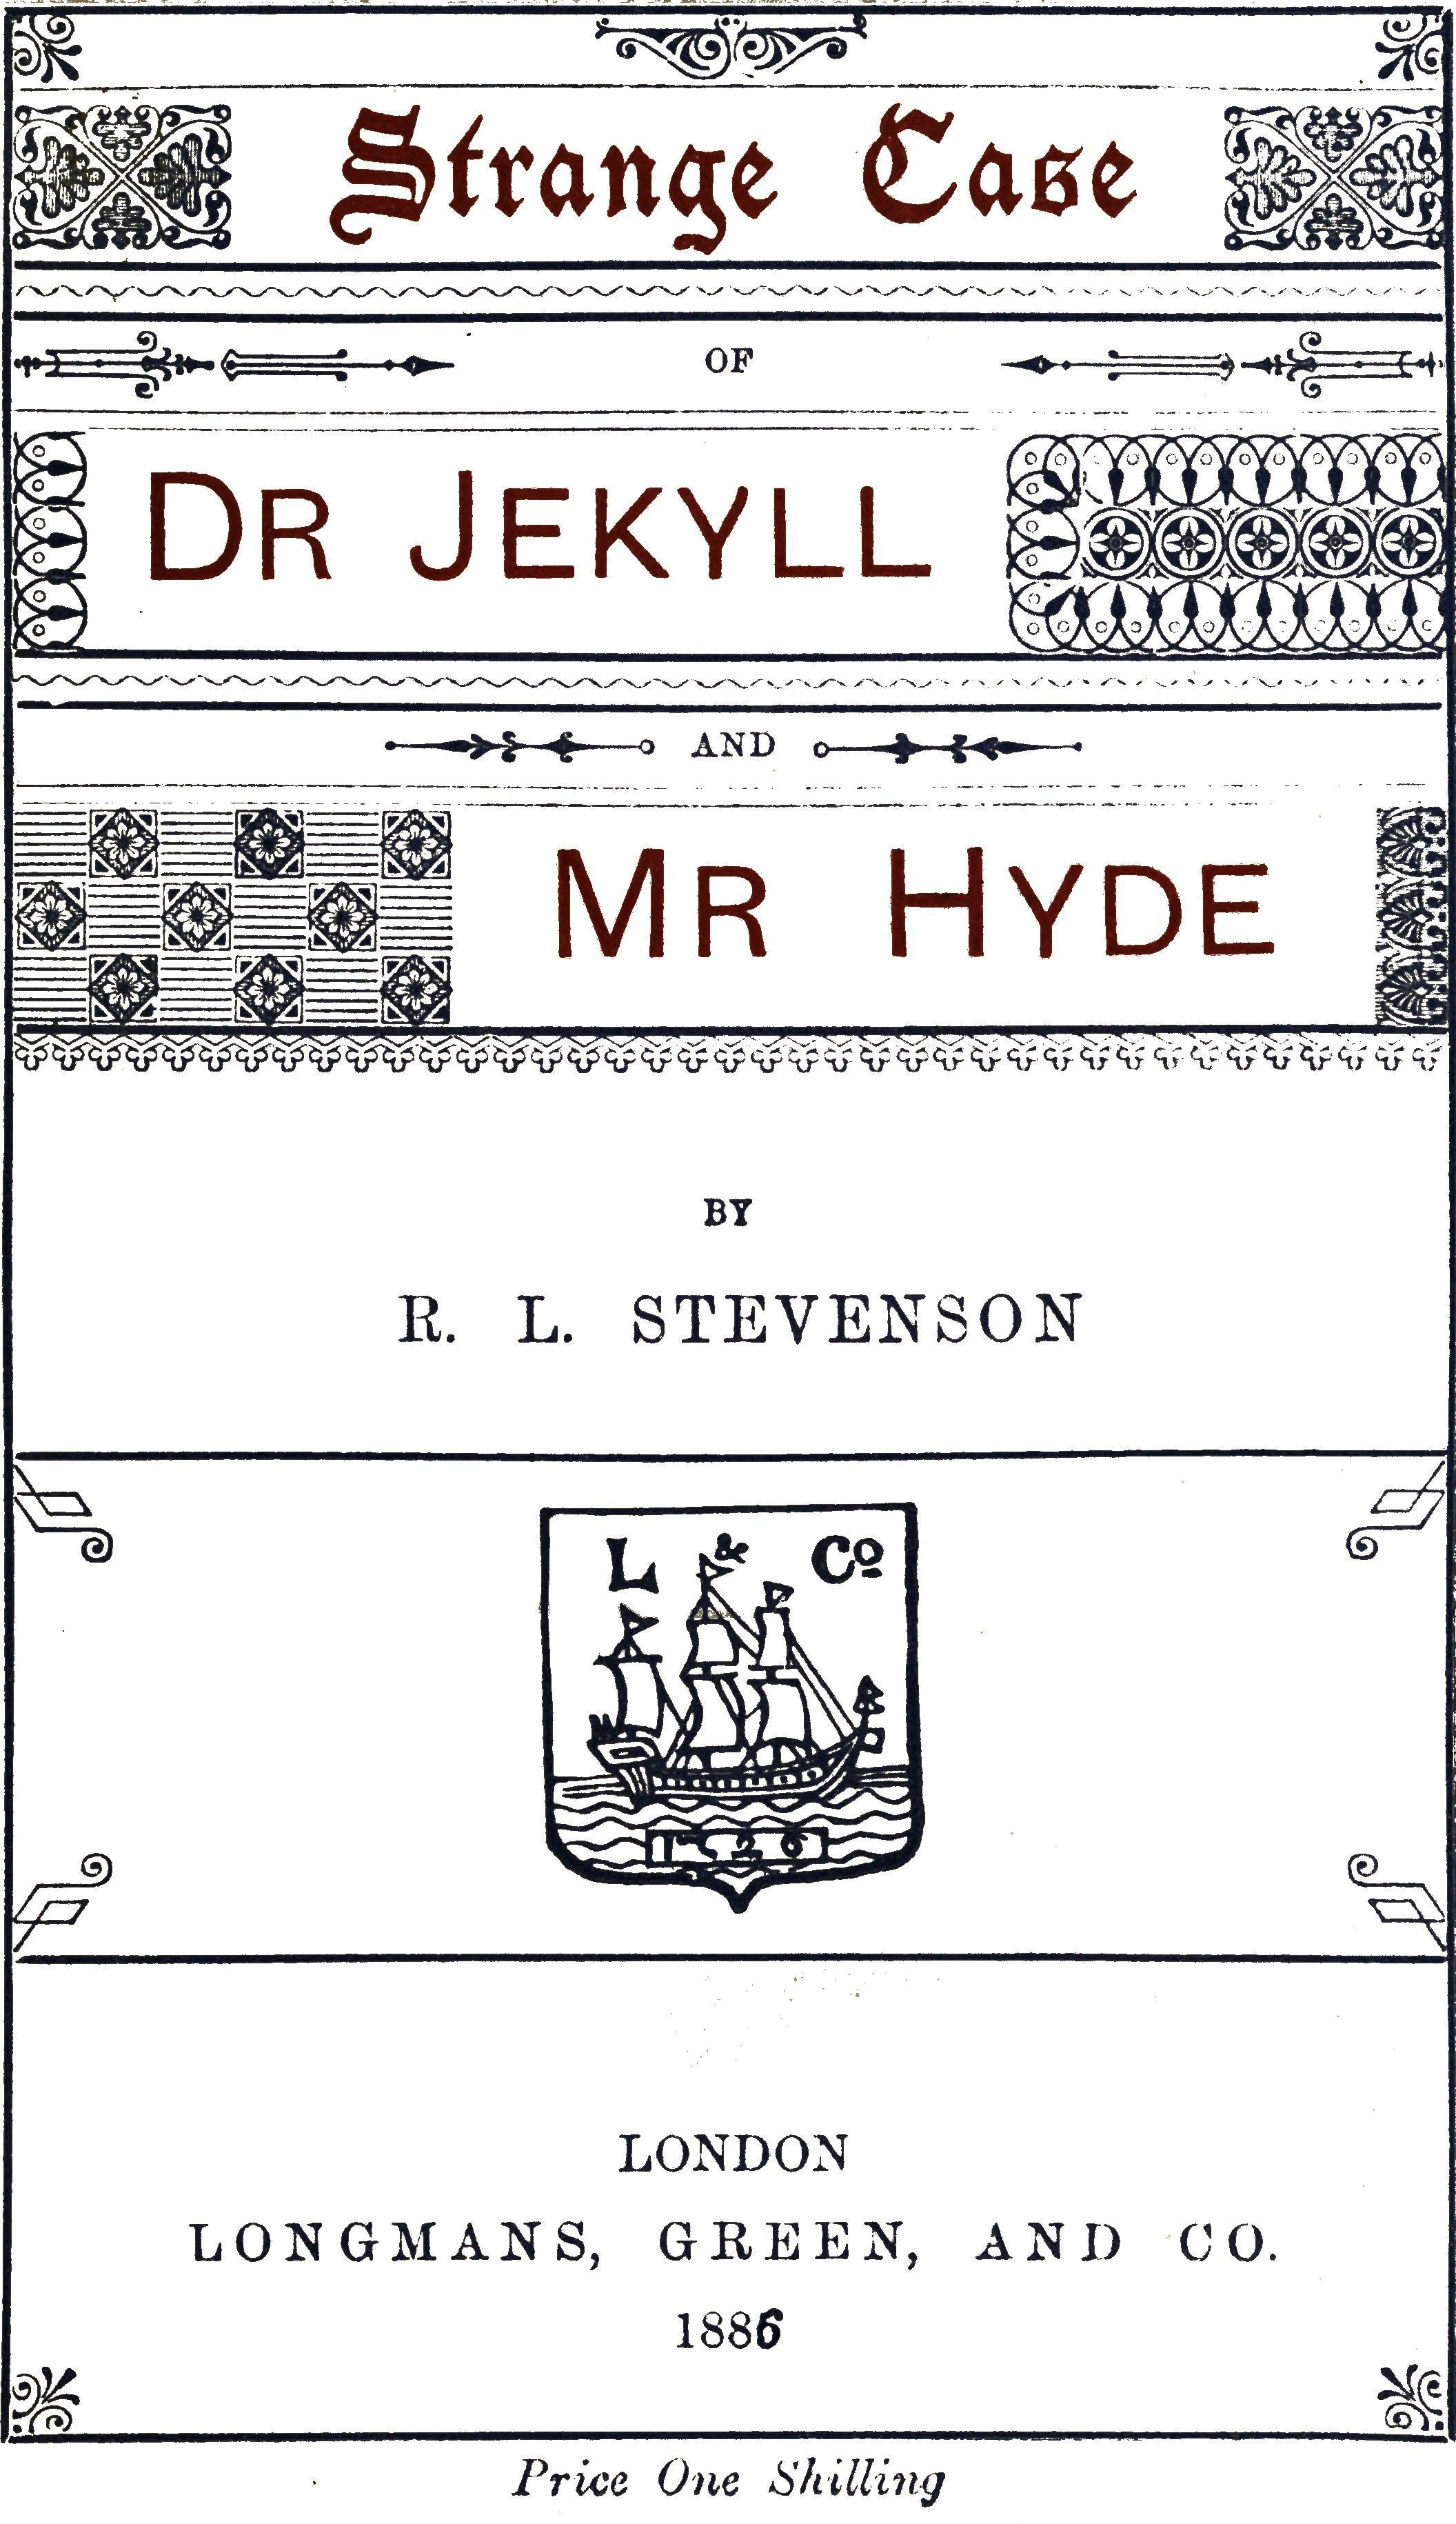 strange case of dr jekyll and mr hyde wikisource the strange case of dr jekyll and mr hyde 001 jpg